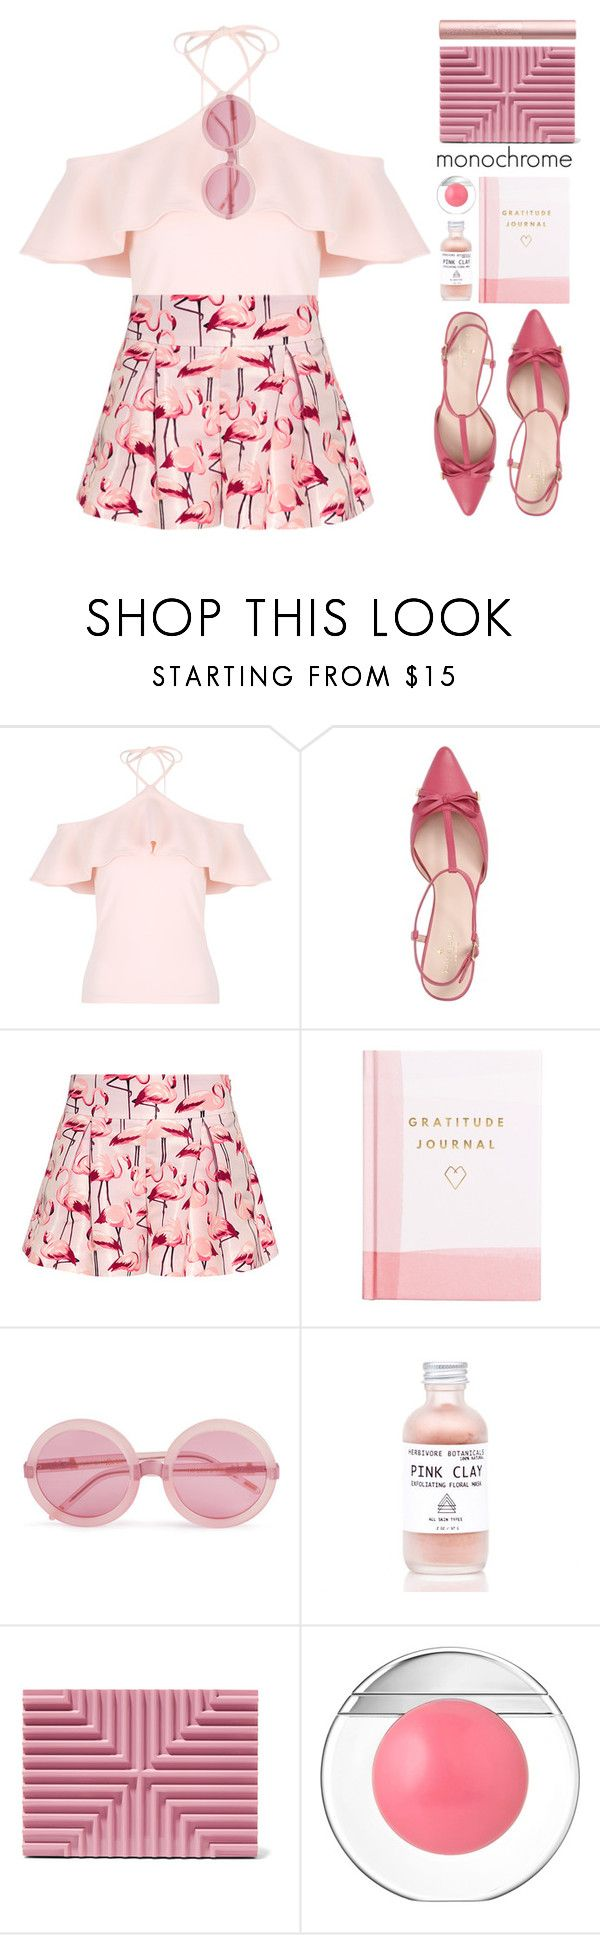 """""""monochrome"""" by blueberrylexie ❤ liked on Polyvore featuring Kate Spade, RED Valentino, Thrive, Wildfox, Lee Savage, Estée Lauder and Too Faced Cosmetics"""